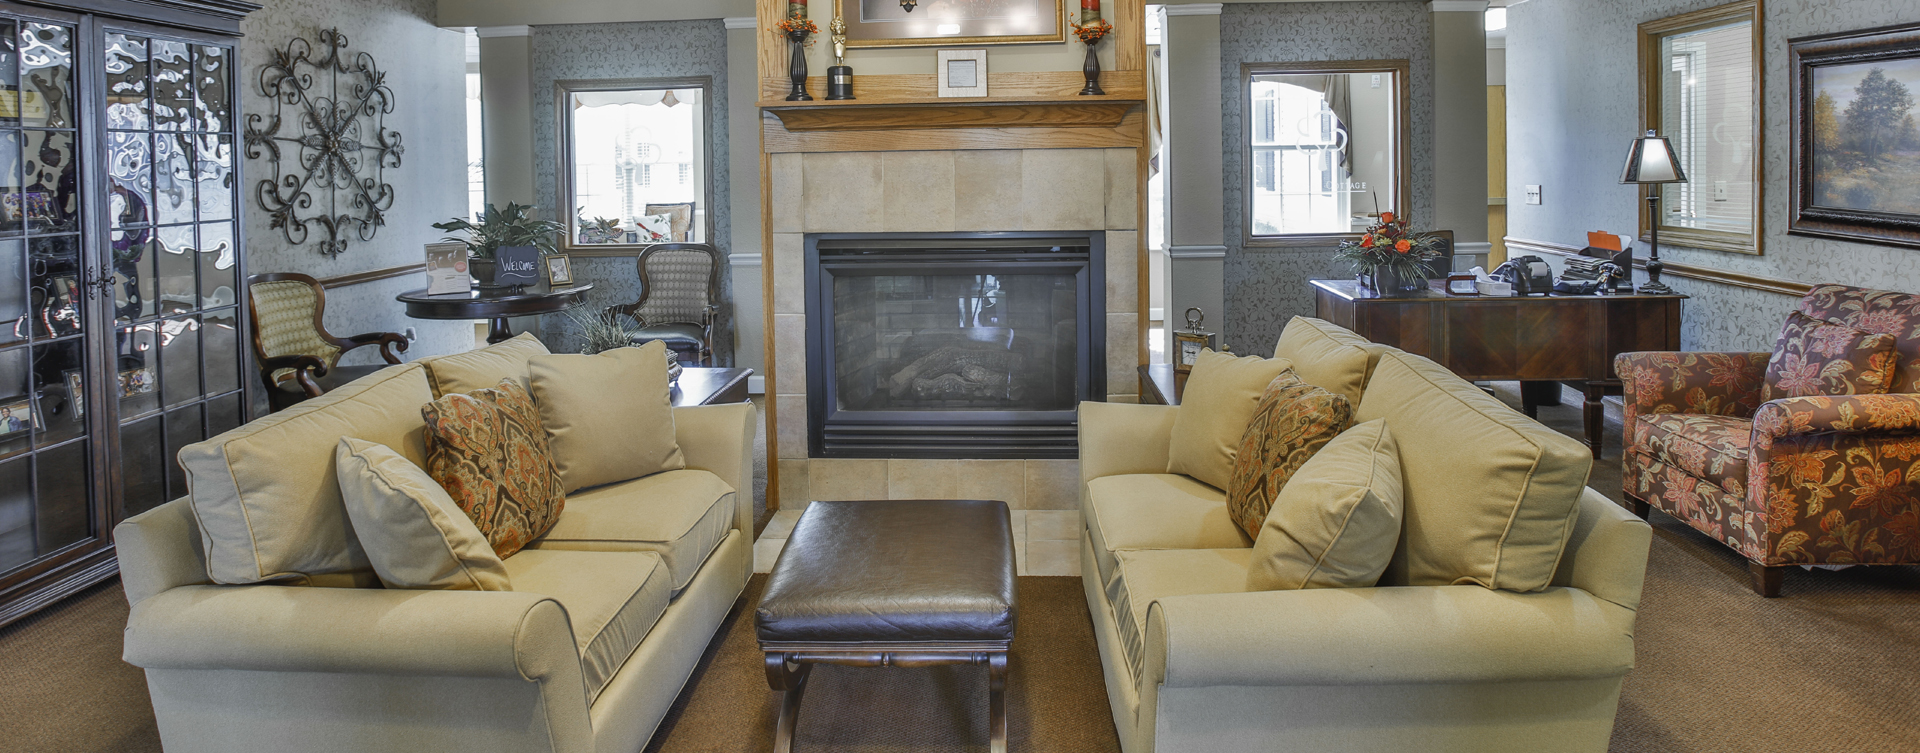 Chairs and sofas sit higher and are easier to get in and out of in the Mary B's living room at Bickford of Peoria